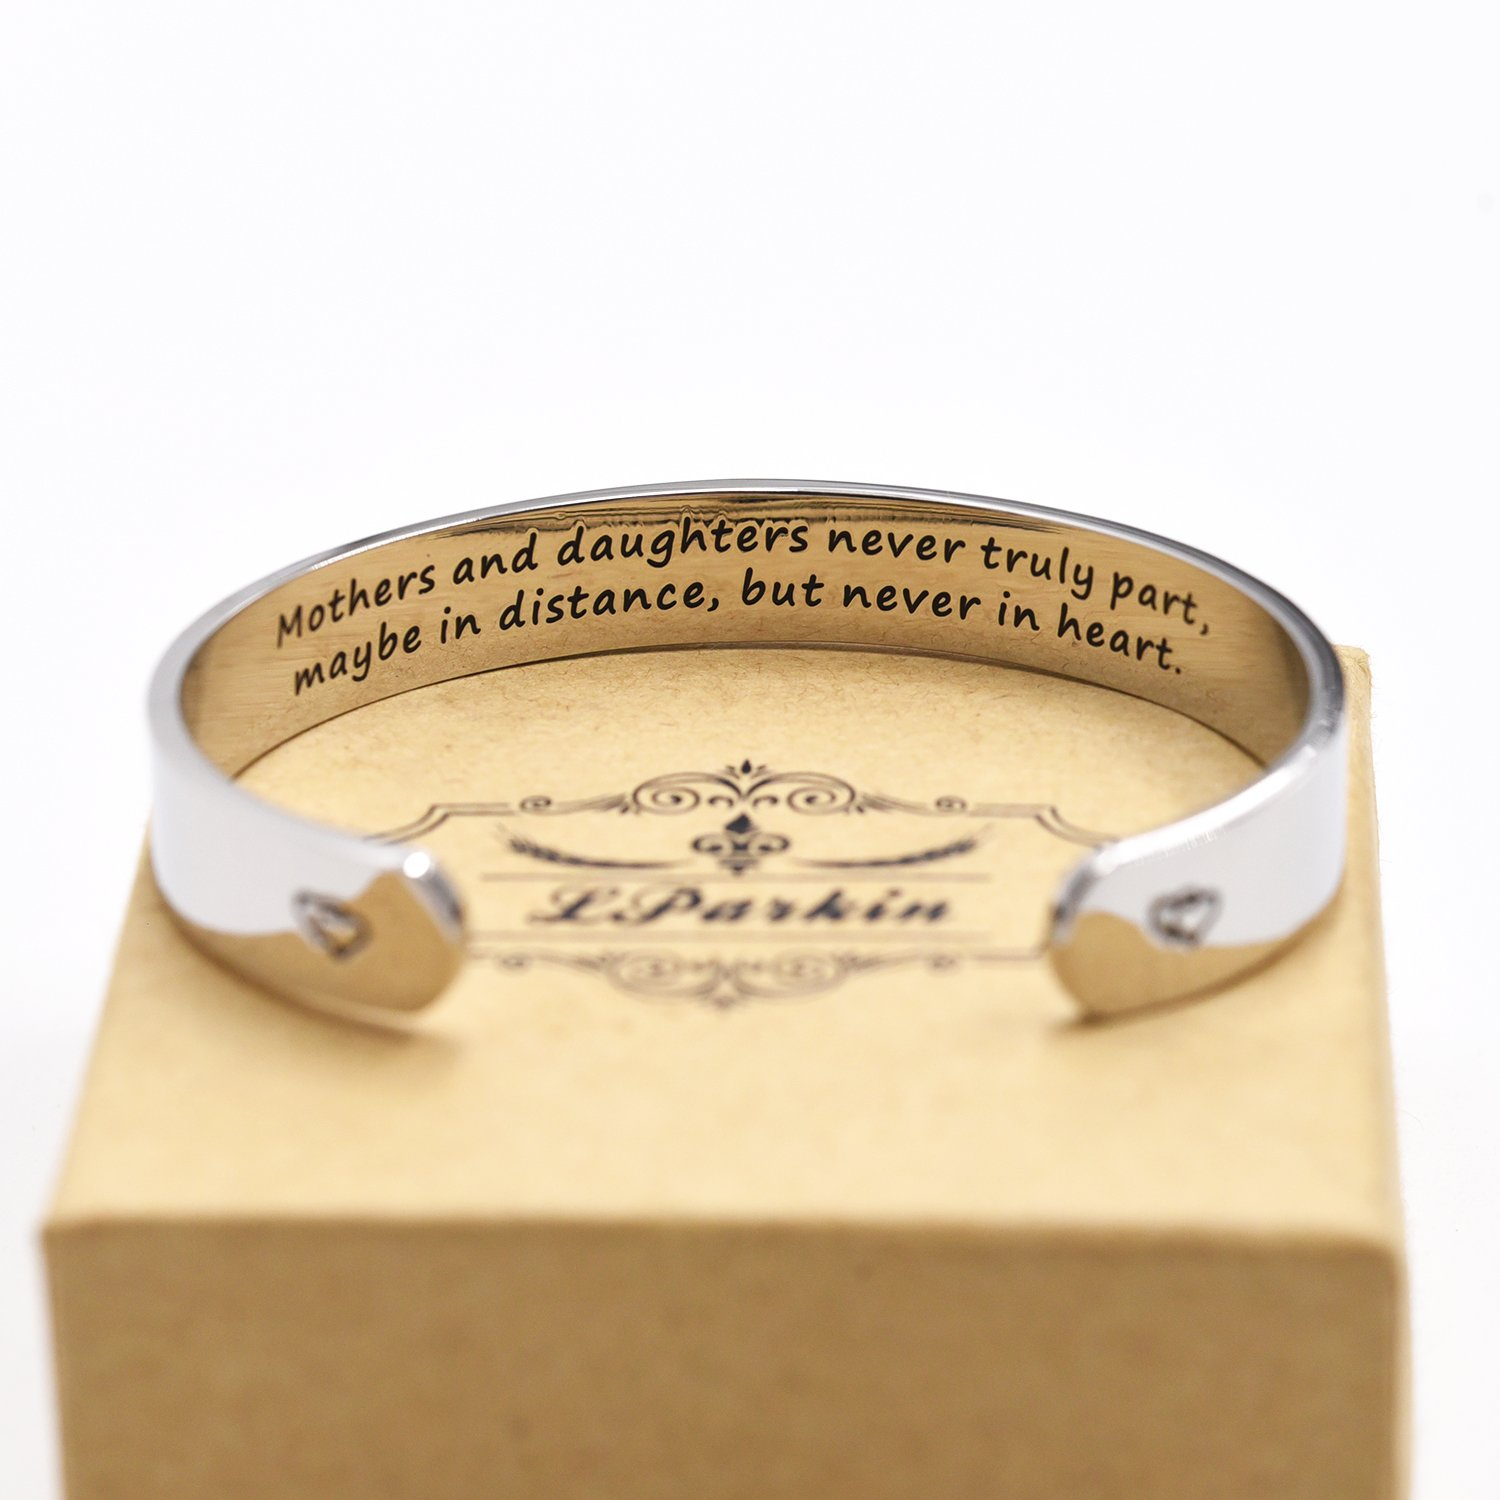 Mothers and Daughters Maybe In Distance But Never Truly Part But Never In Heart Bracelet by LParkin (Image #4)